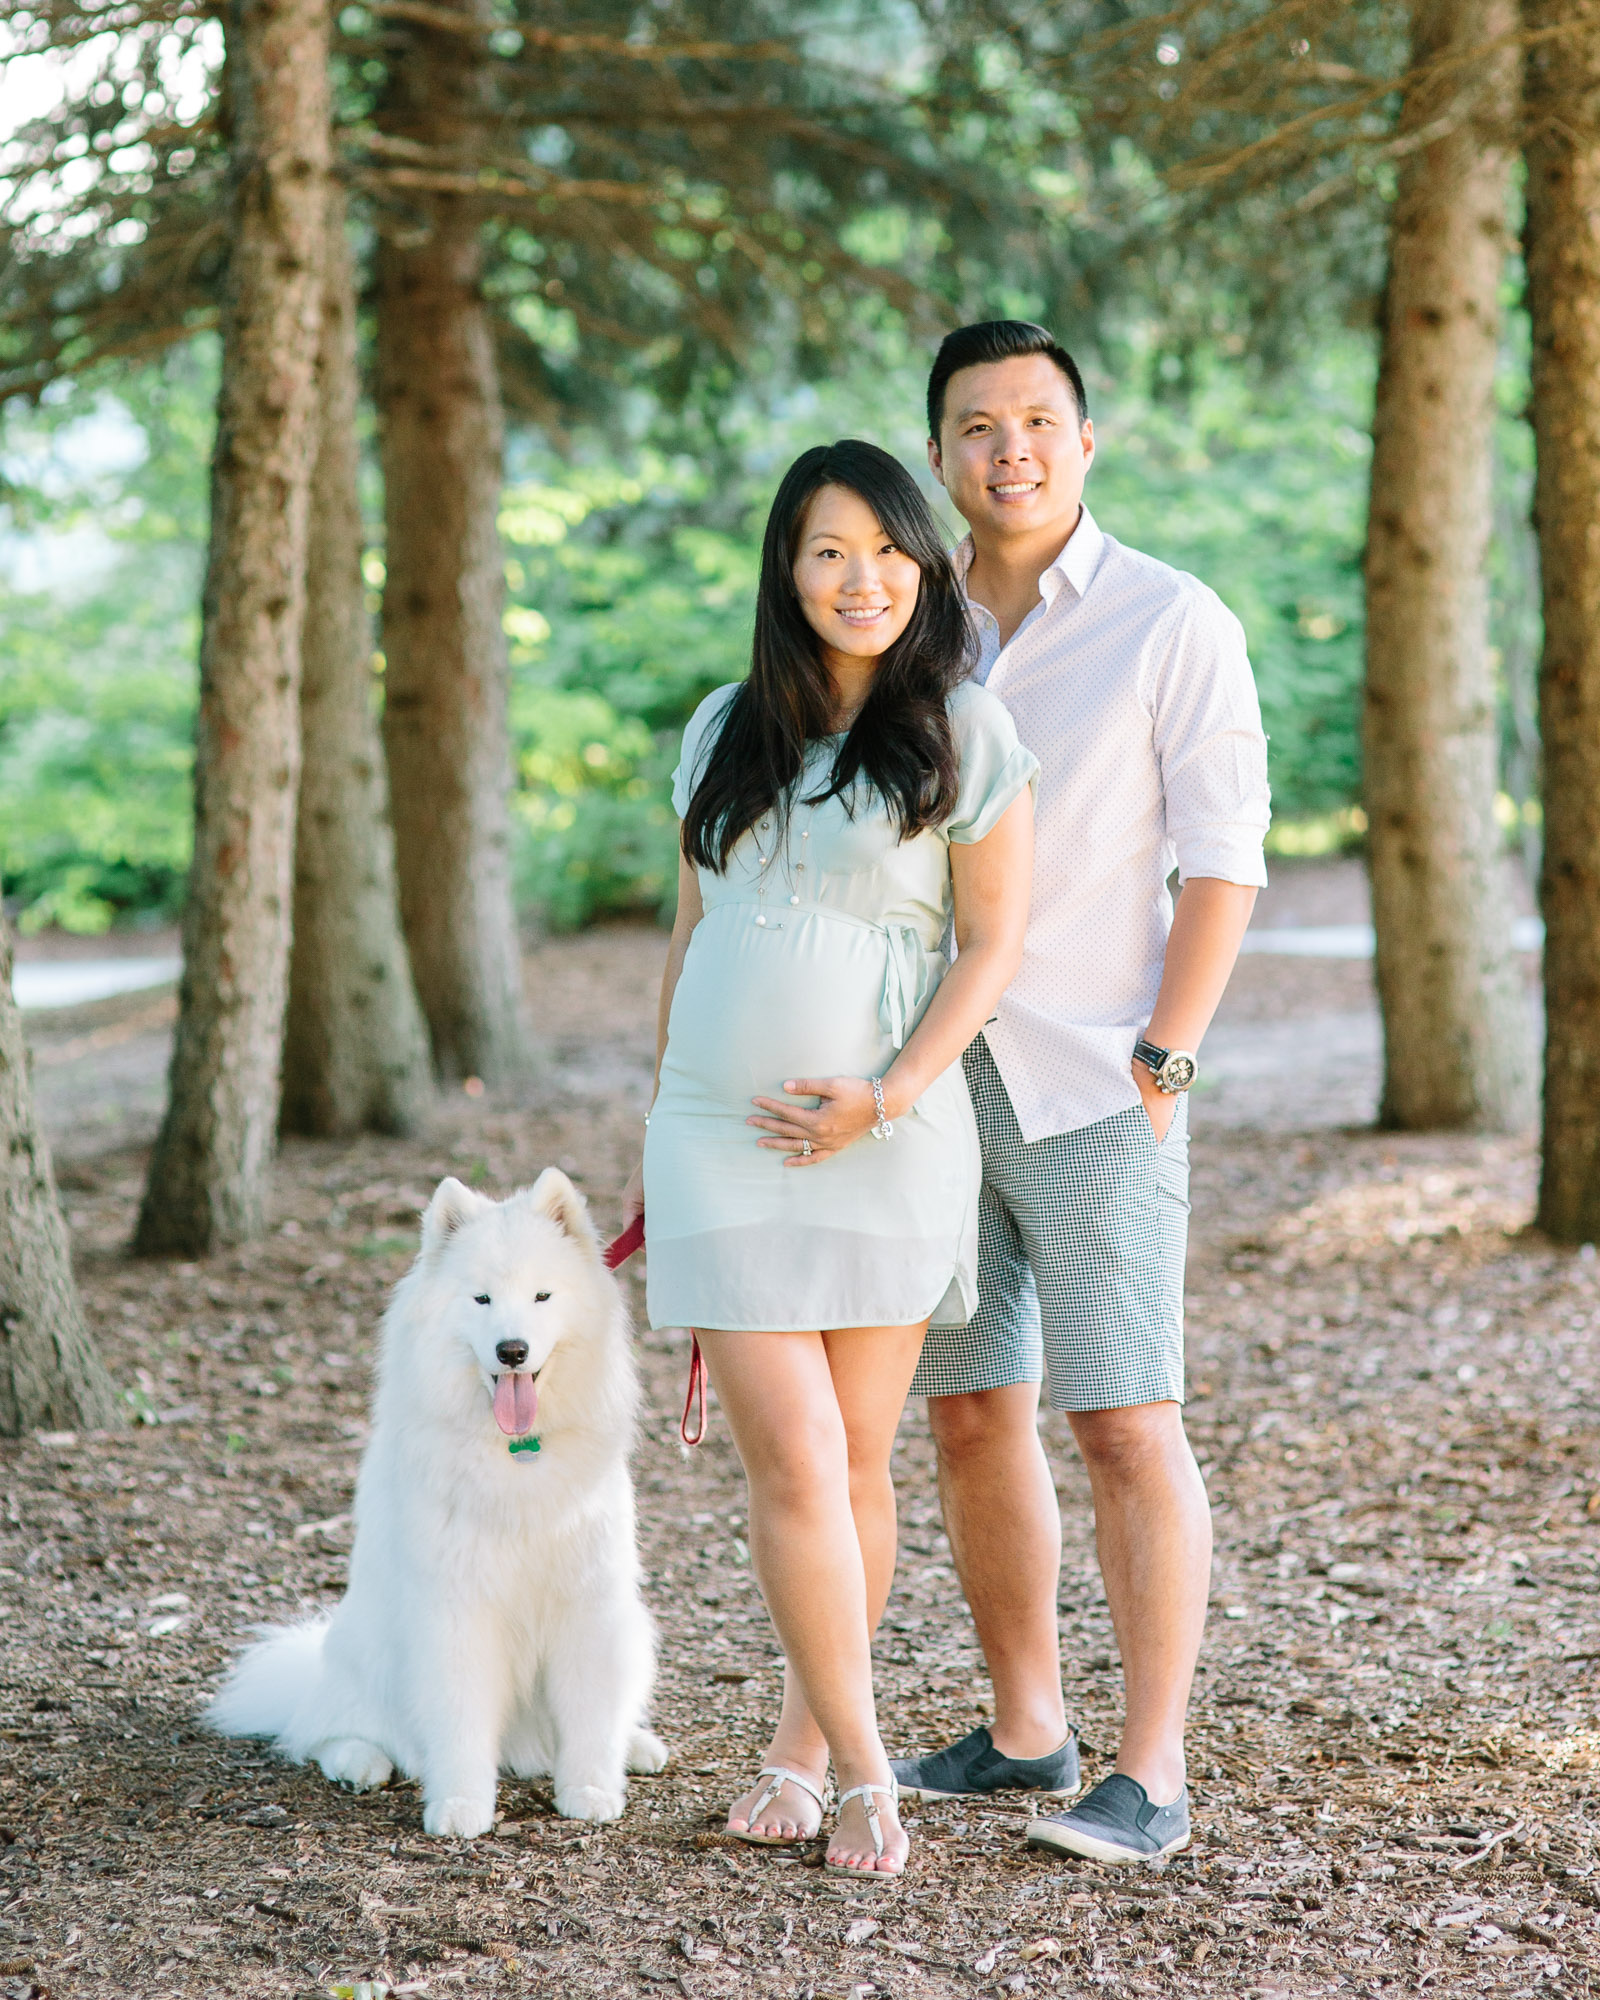 Expectant parents posed with their family dog